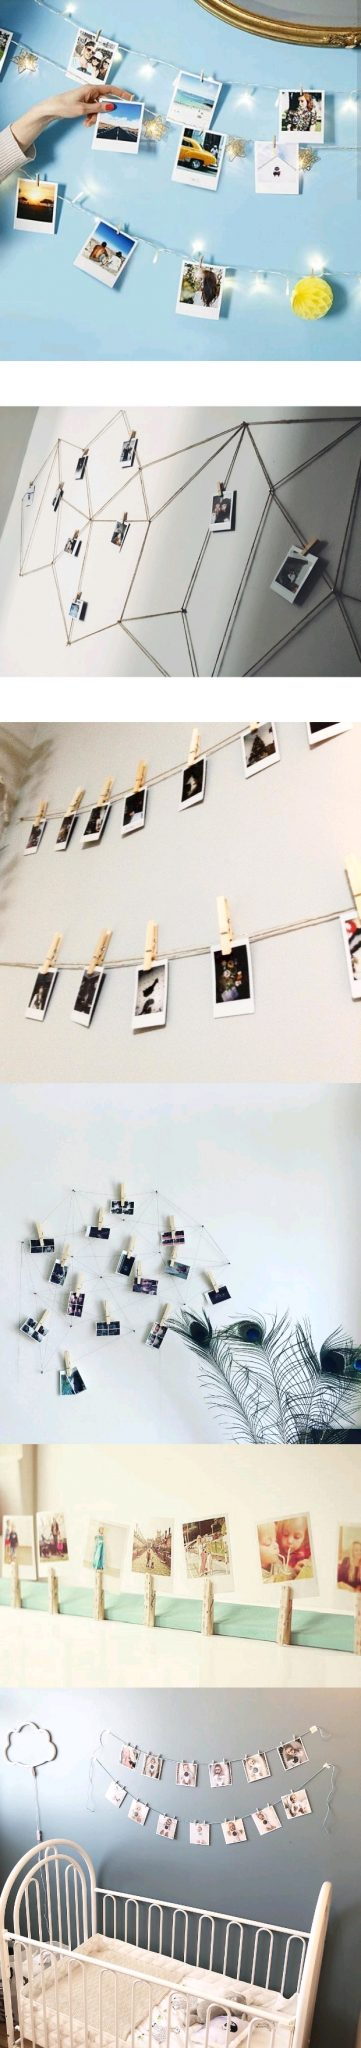 polaroid display clothespin